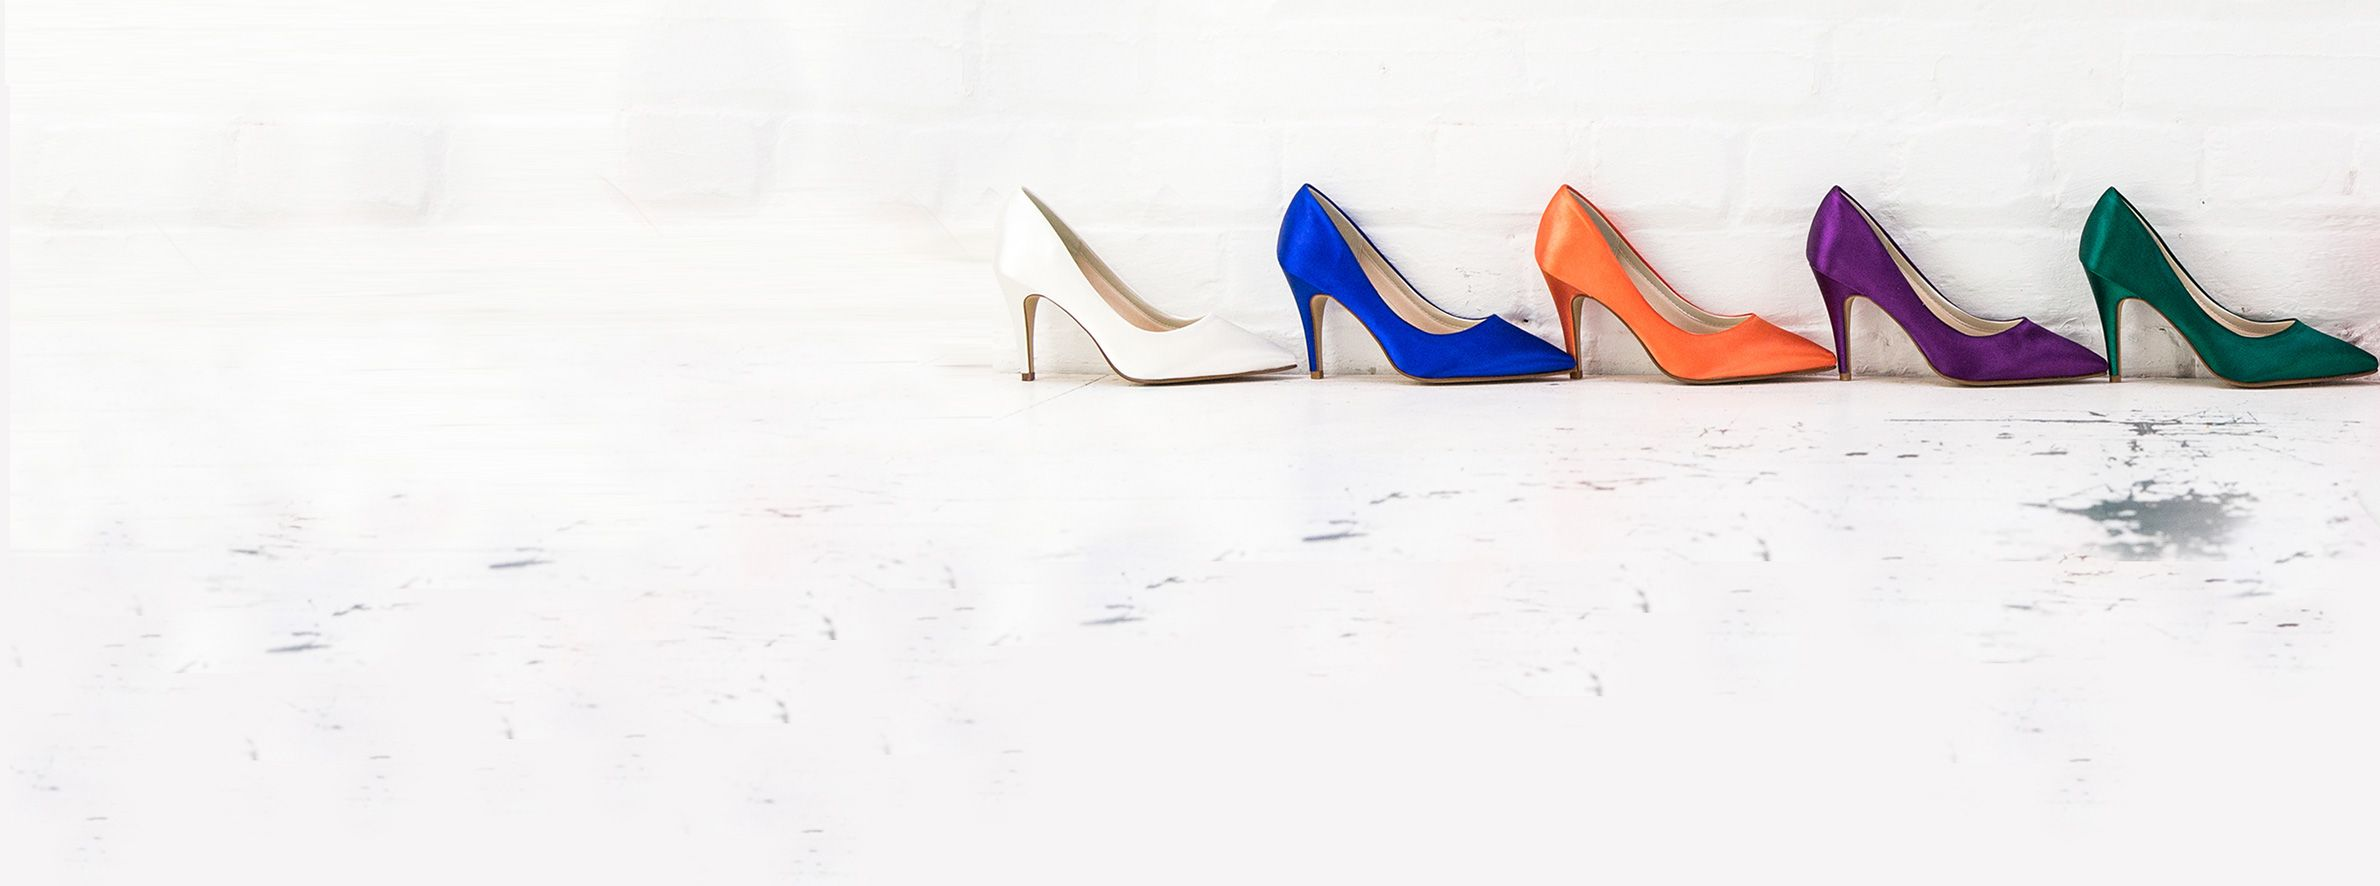 Celebrate In Style With Our Collection Of Occasion Shoes Colour Pop Courts Embellished Heels And Timeless Styles Designed For Those Special Moments